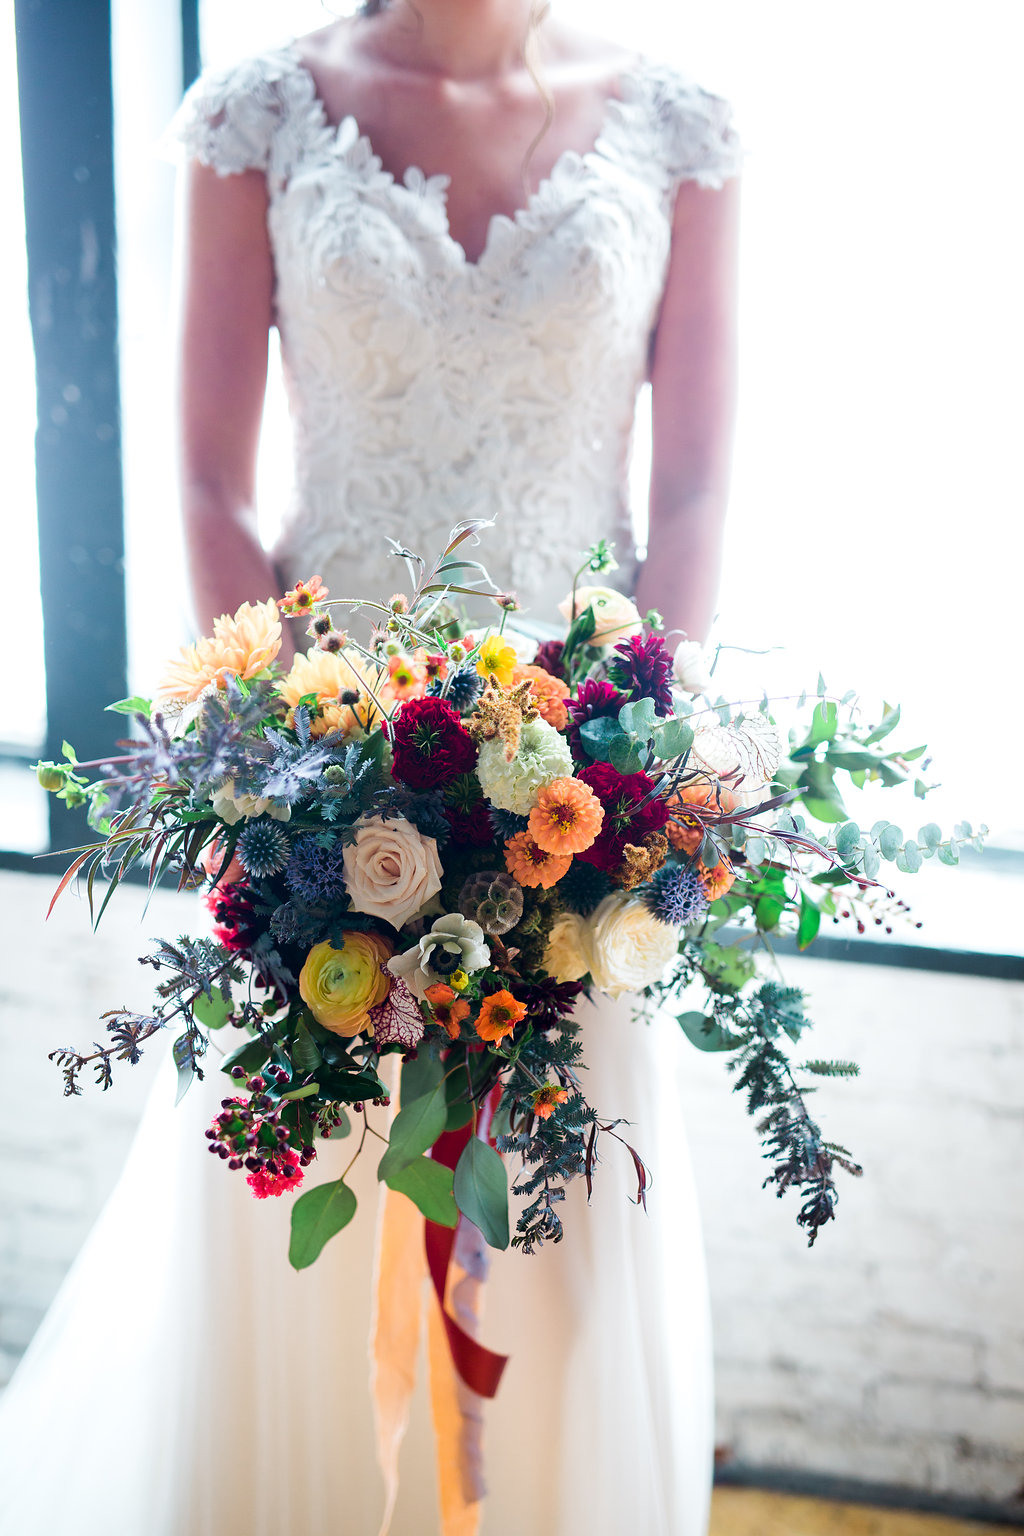 Florals: Poppies Design Studio